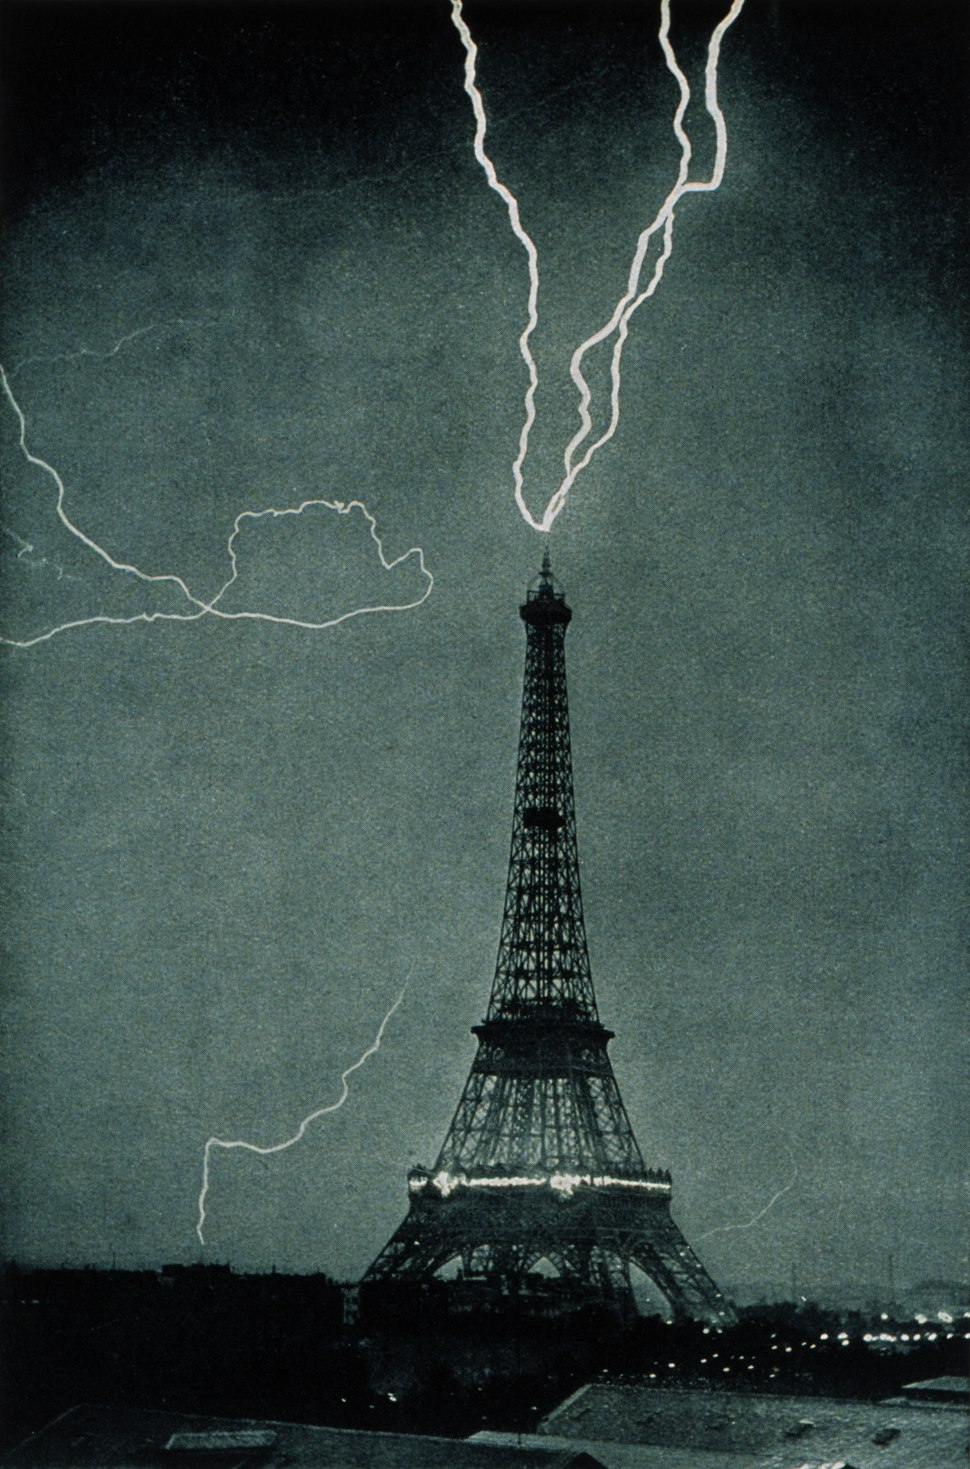 Lightning striking the Eiffel Tower - NOAA